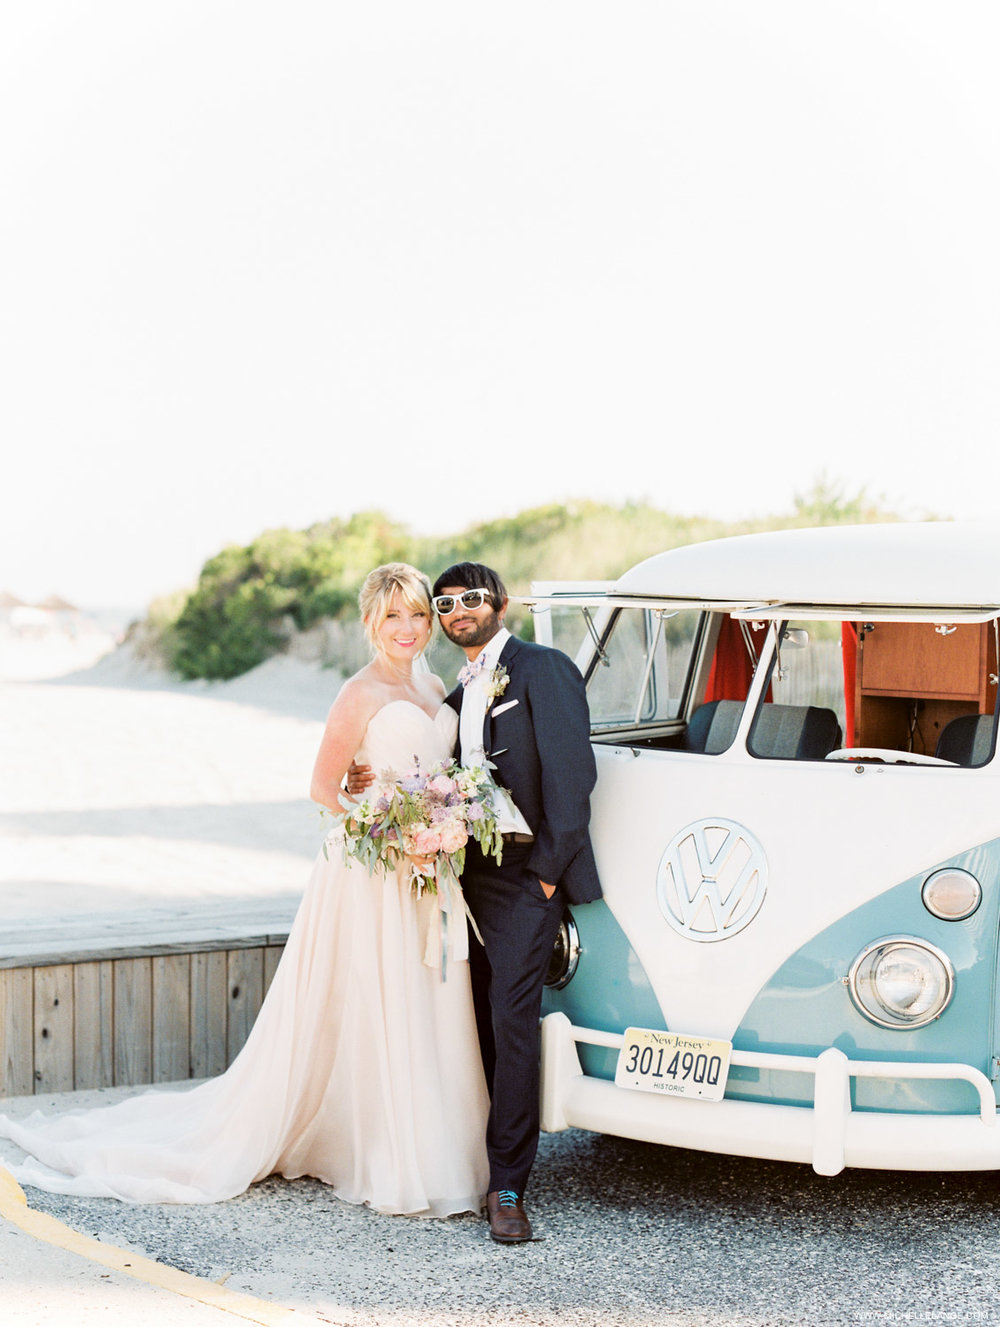 NJ Wedding Photographer at Hotel Icona in Cape May with Vintage VW Bus